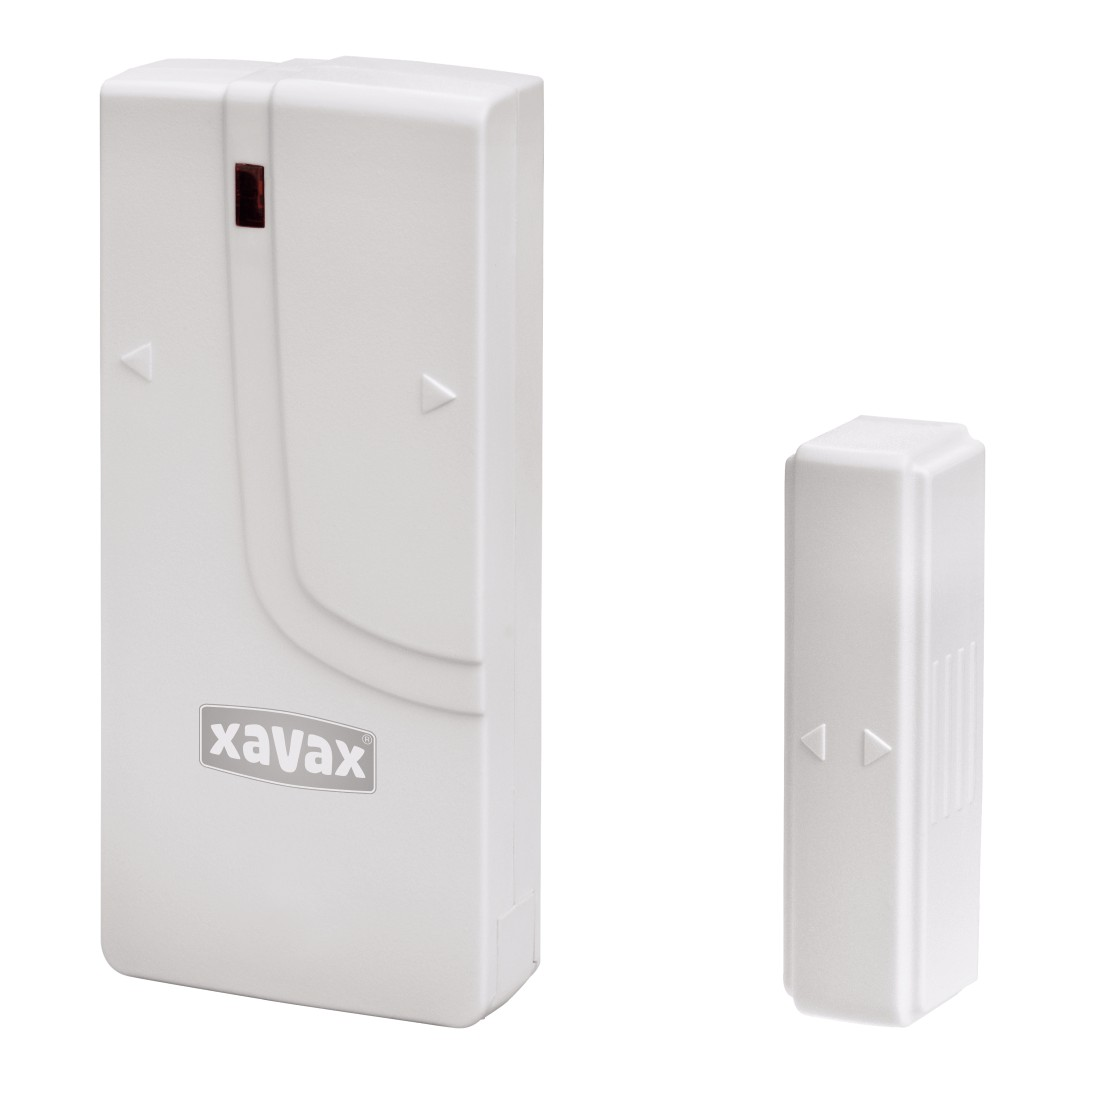 00111979 xavax fenster t r alarm sensor f r funk alarm system feelsafe xavax. Black Bedroom Furniture Sets. Home Design Ideas